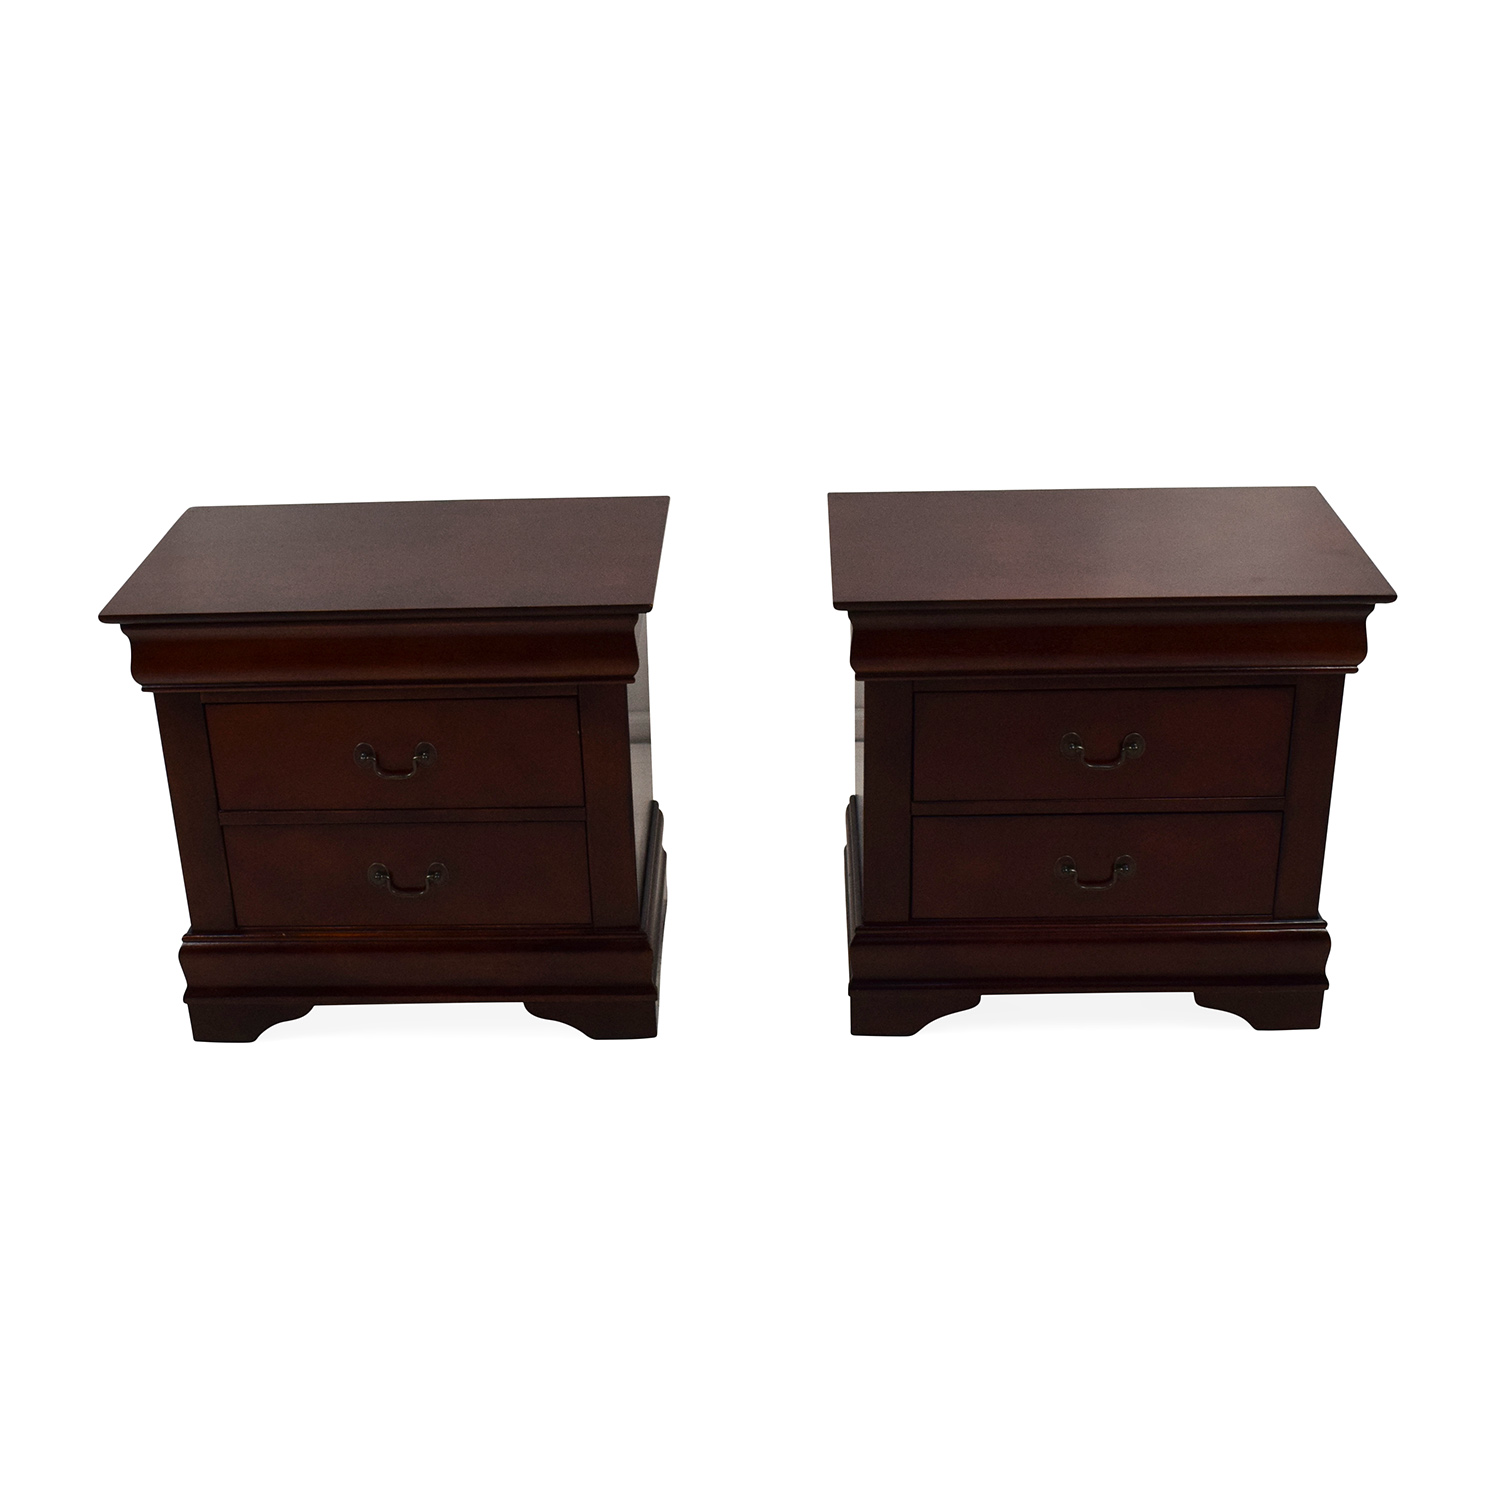 Set of 2 Wooden Nightstands with Drawers second hand